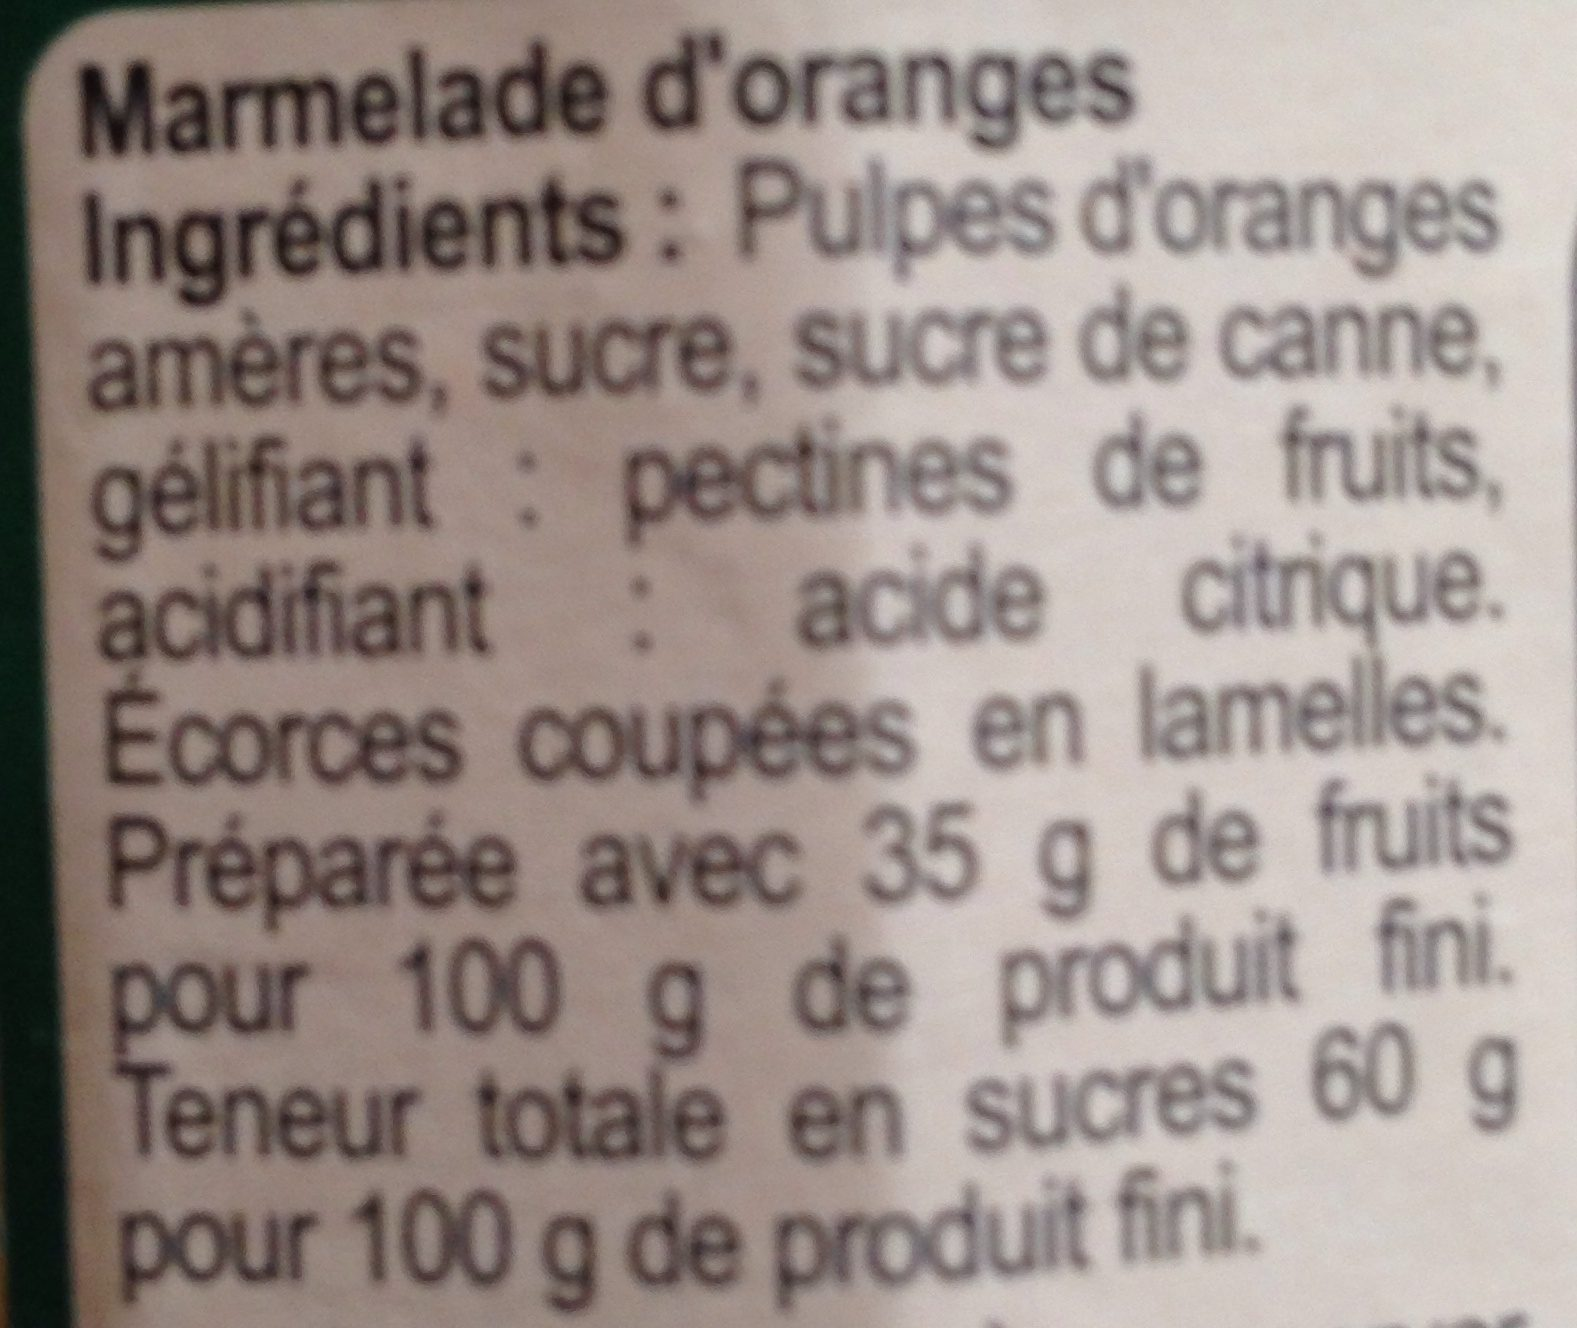 Marmelade orange - Ingrédients